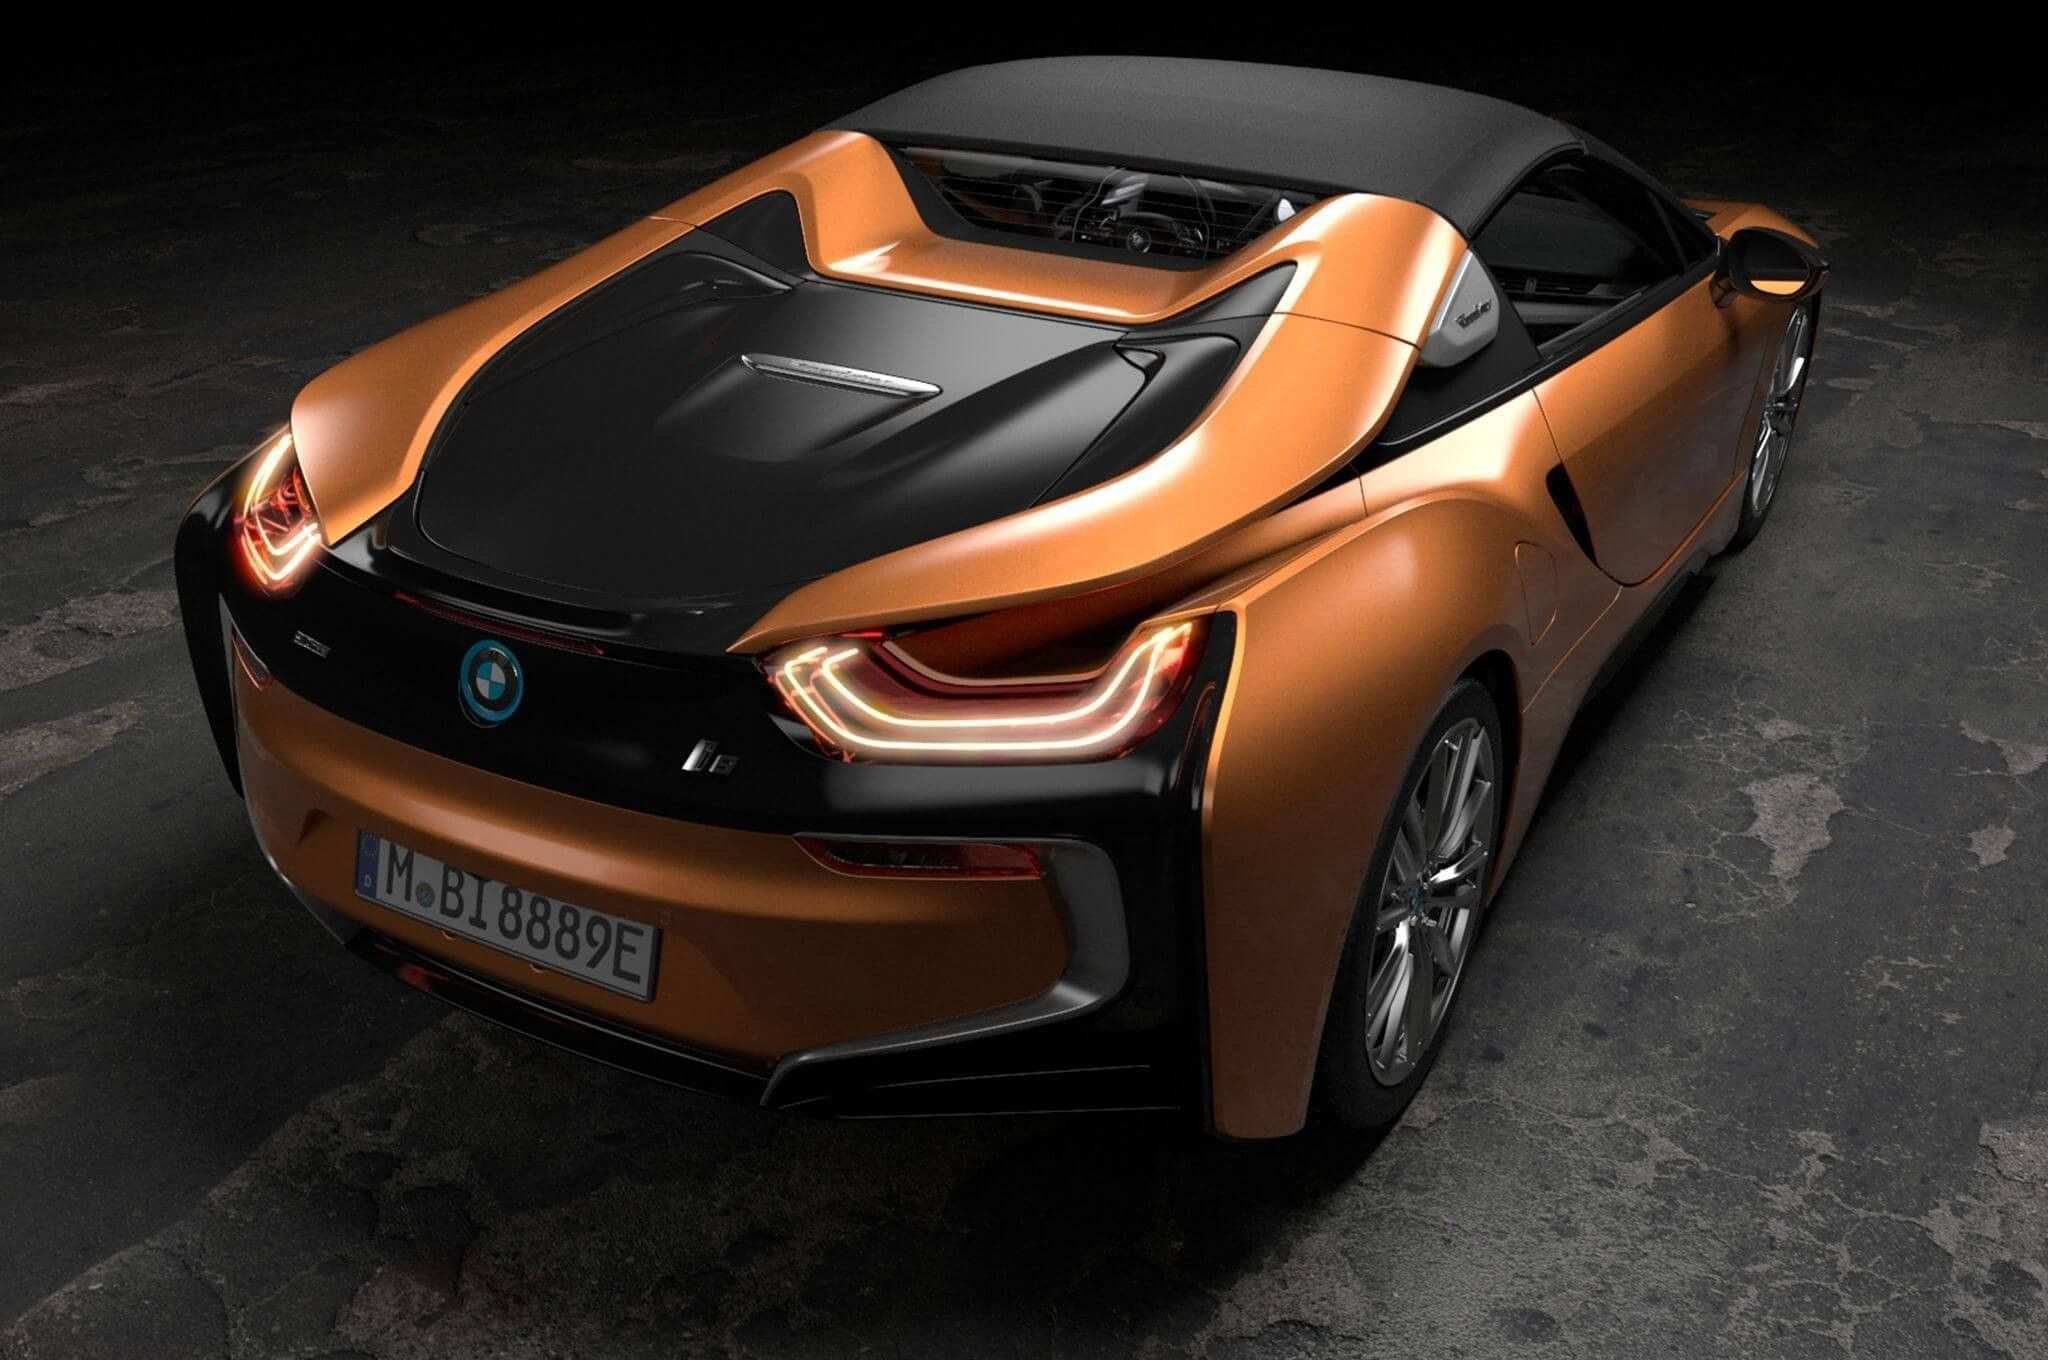 33 All New Best Bmw Upcoming Cars 2019 Rumors History with Best Bmw Upcoming Cars 2019 Rumors